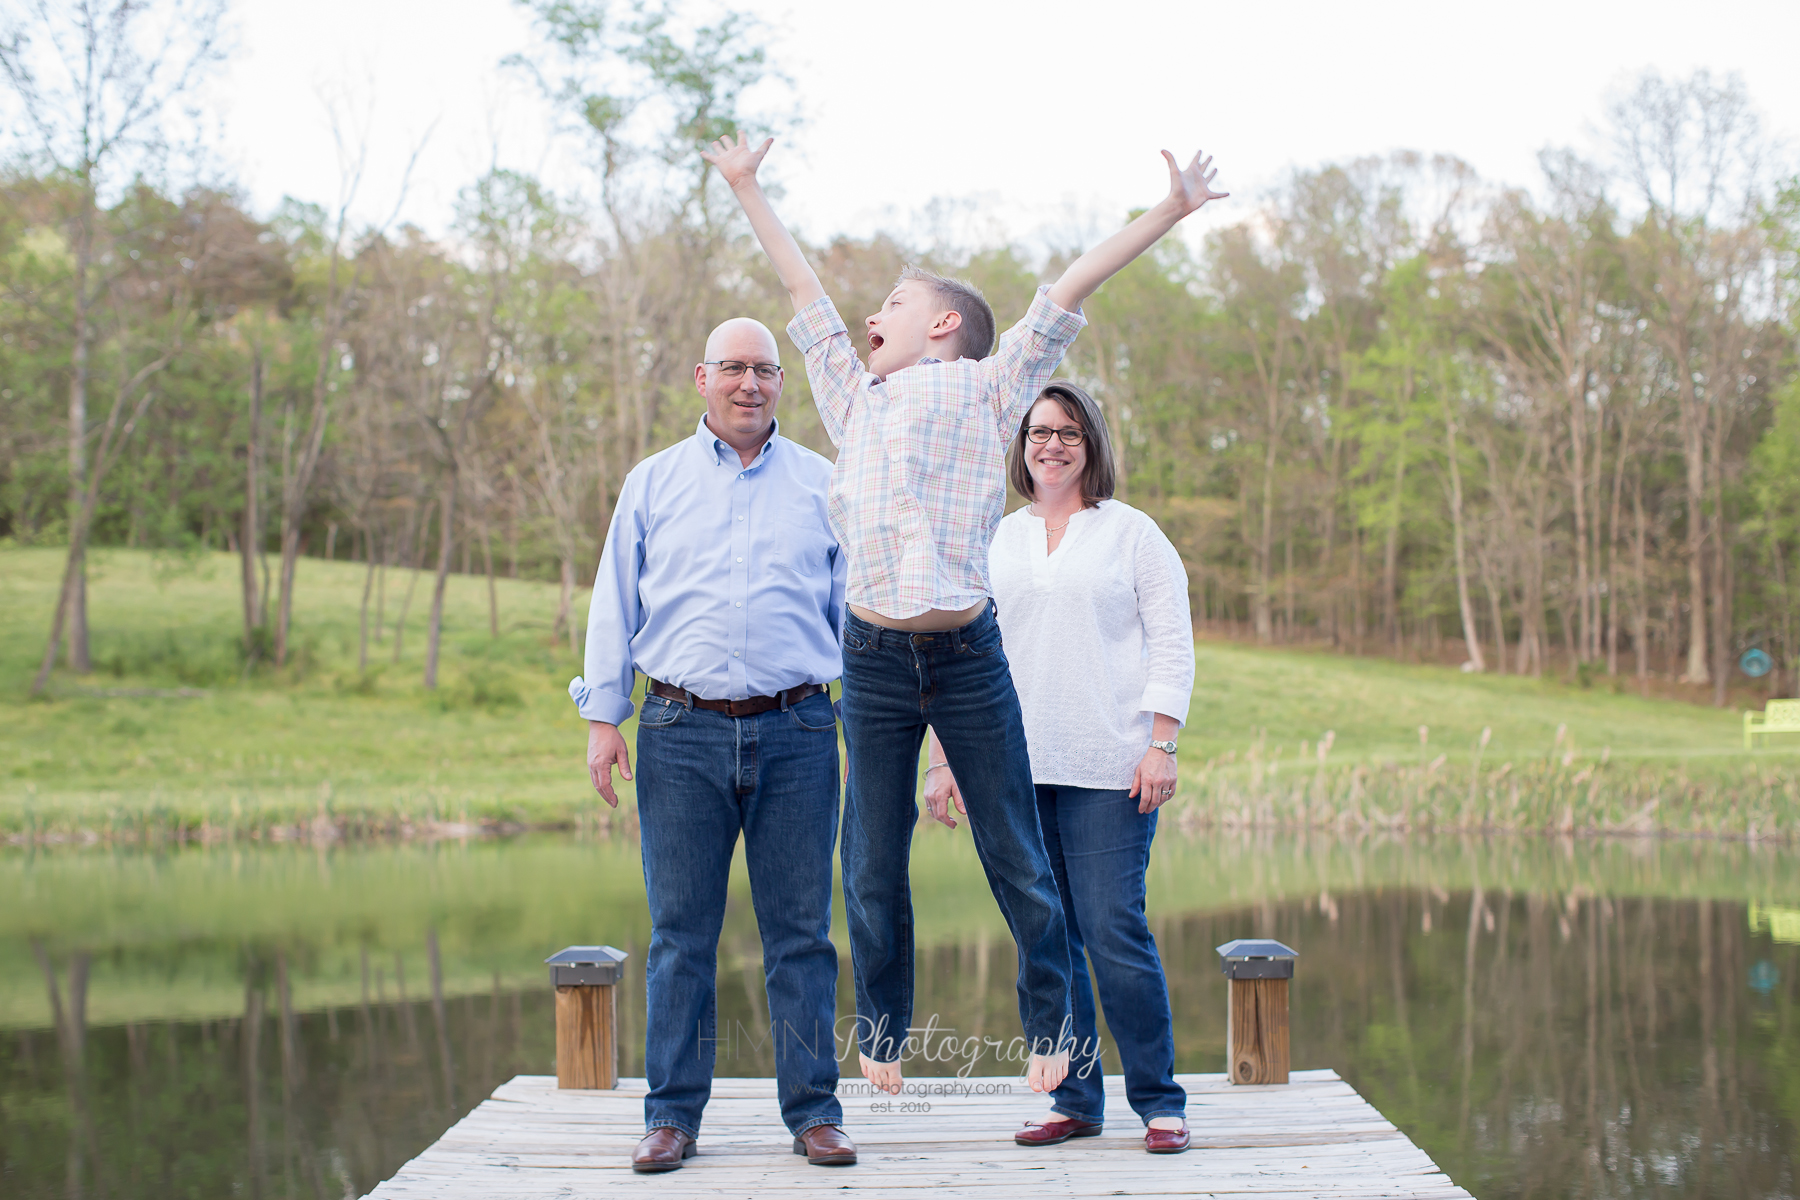 Family Session at The Farm Retreat at Willow Creek